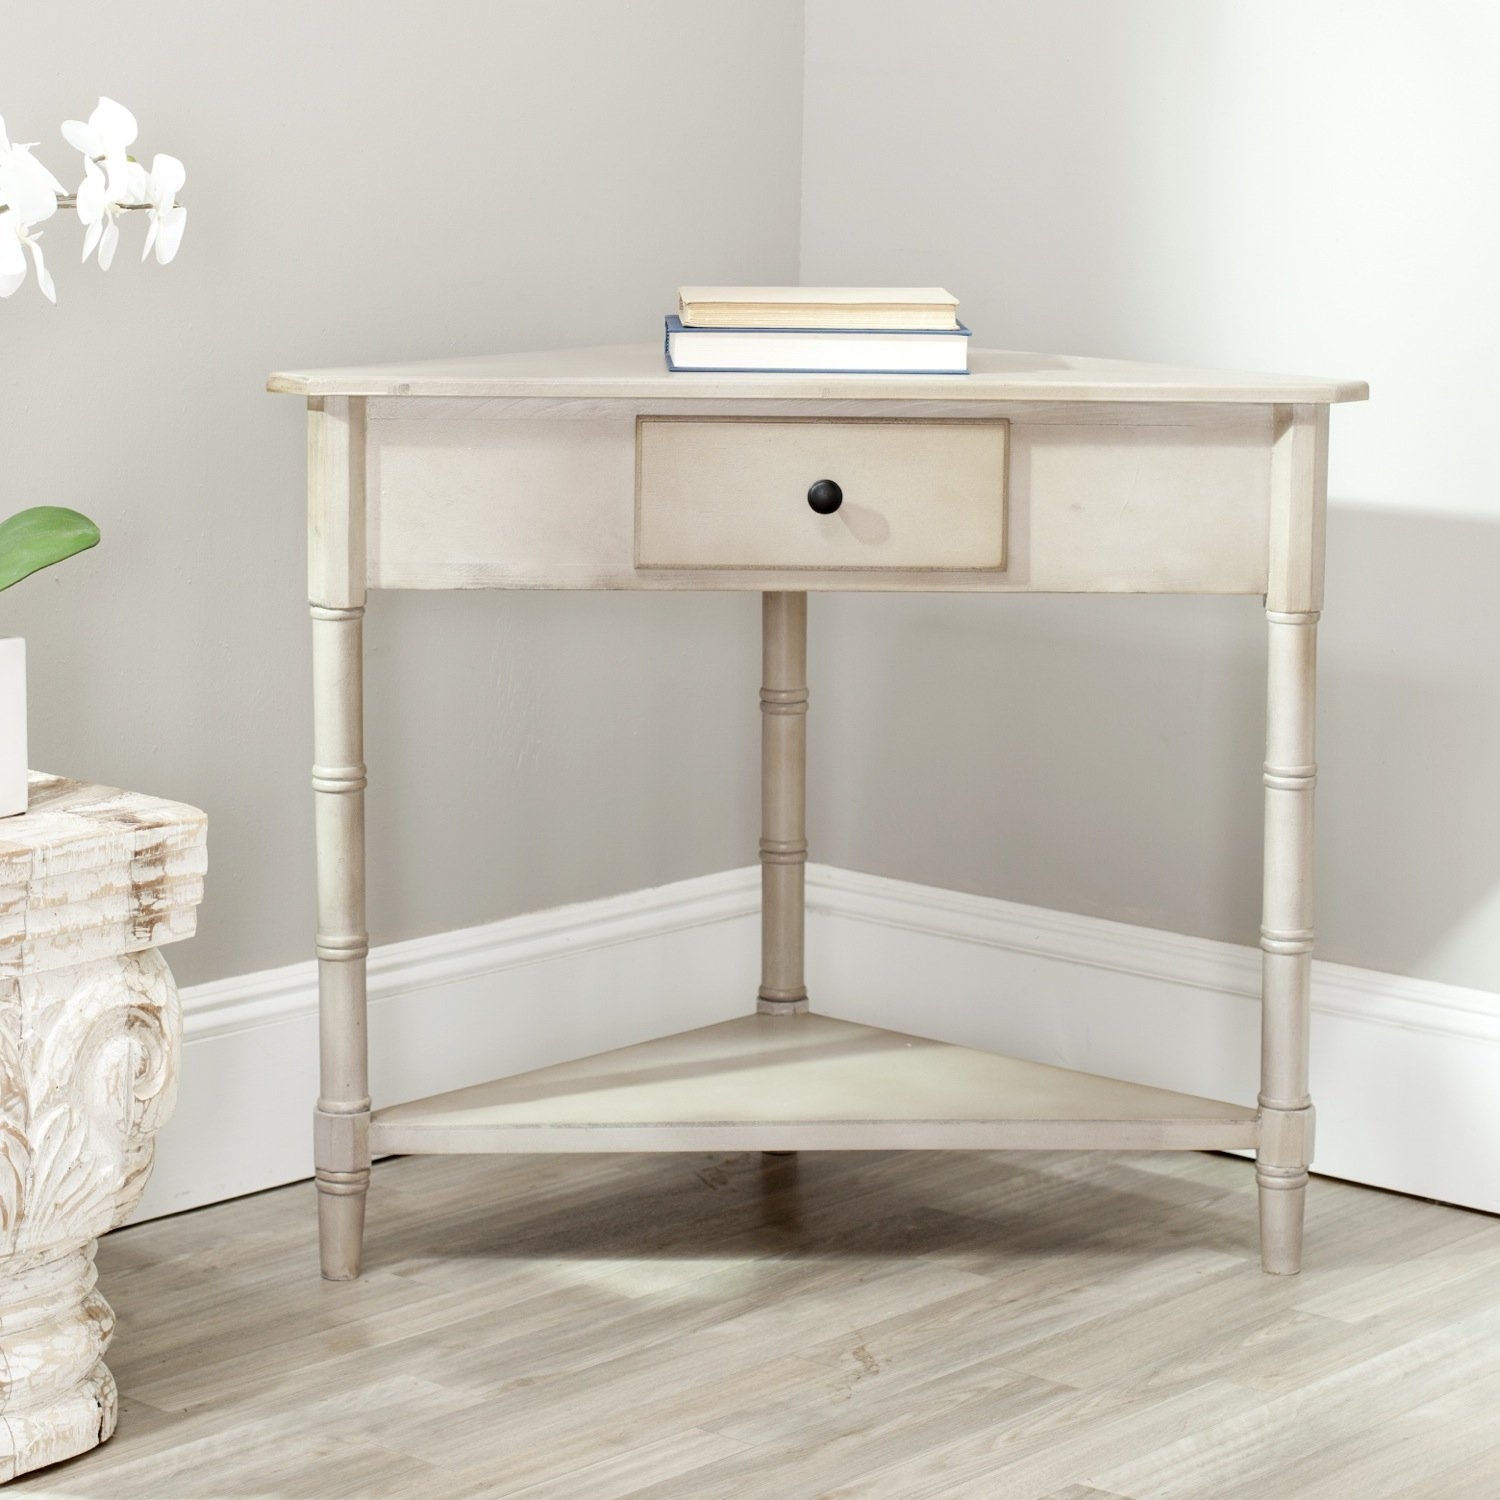 Corner console table amazoncom safavieh american home collection corner table geotapseo Gallery